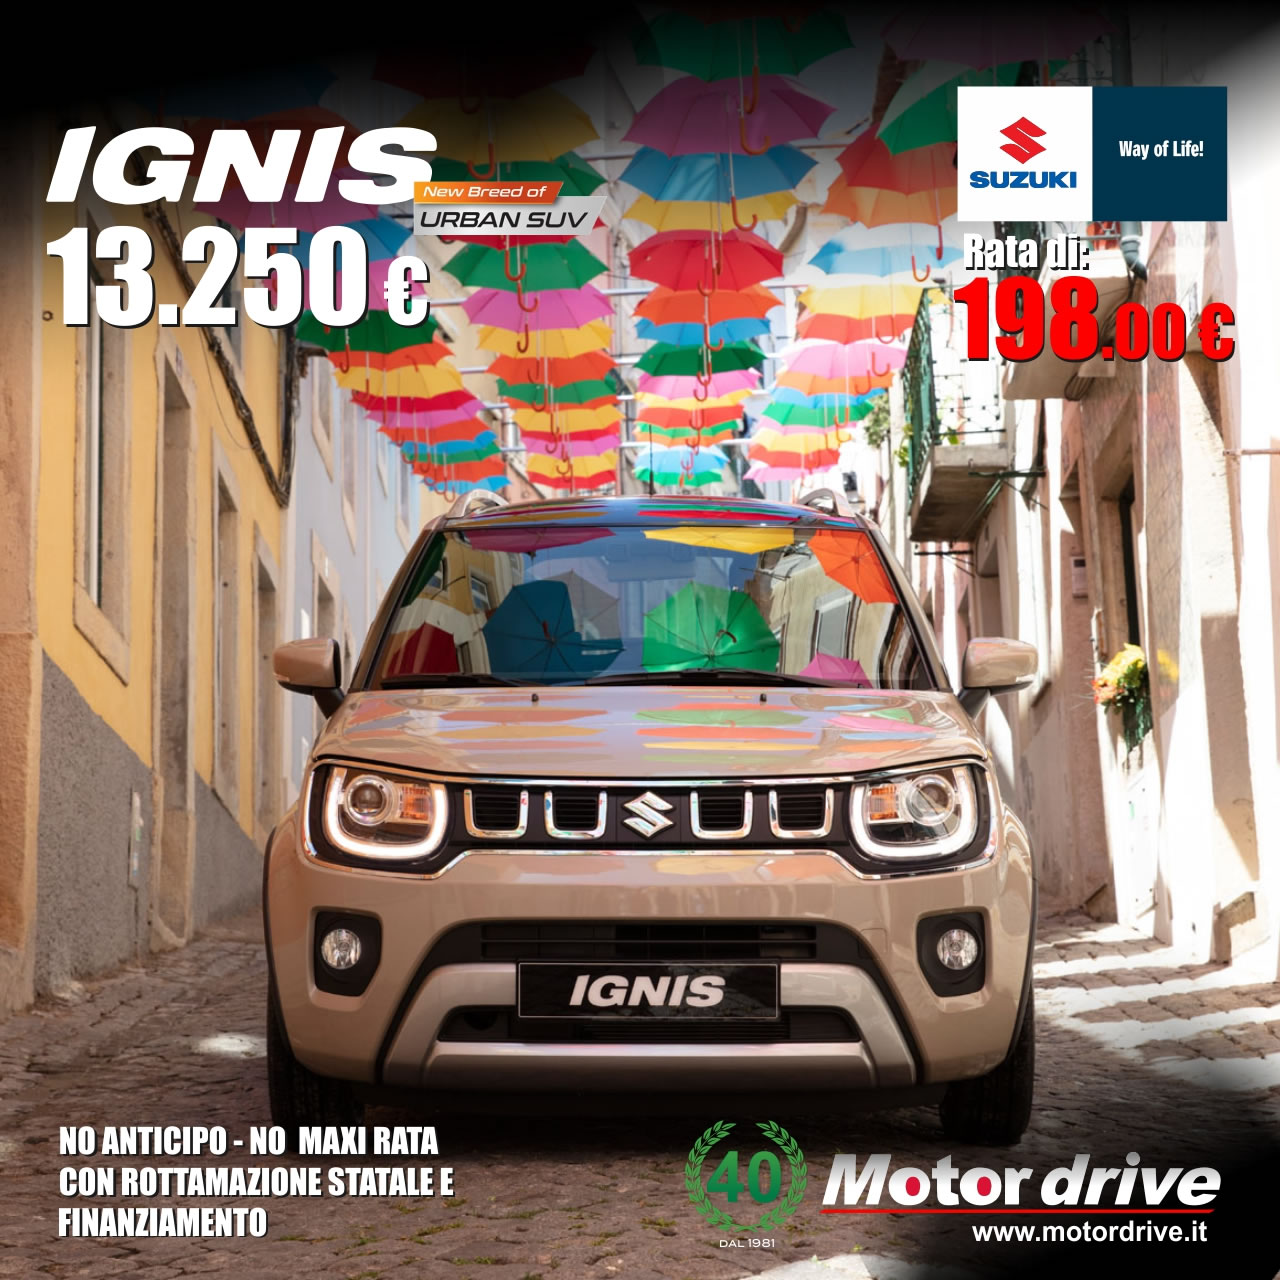 Suzuki Ignis 1.2 cool hybrid - l'unico Suv ultracompatto